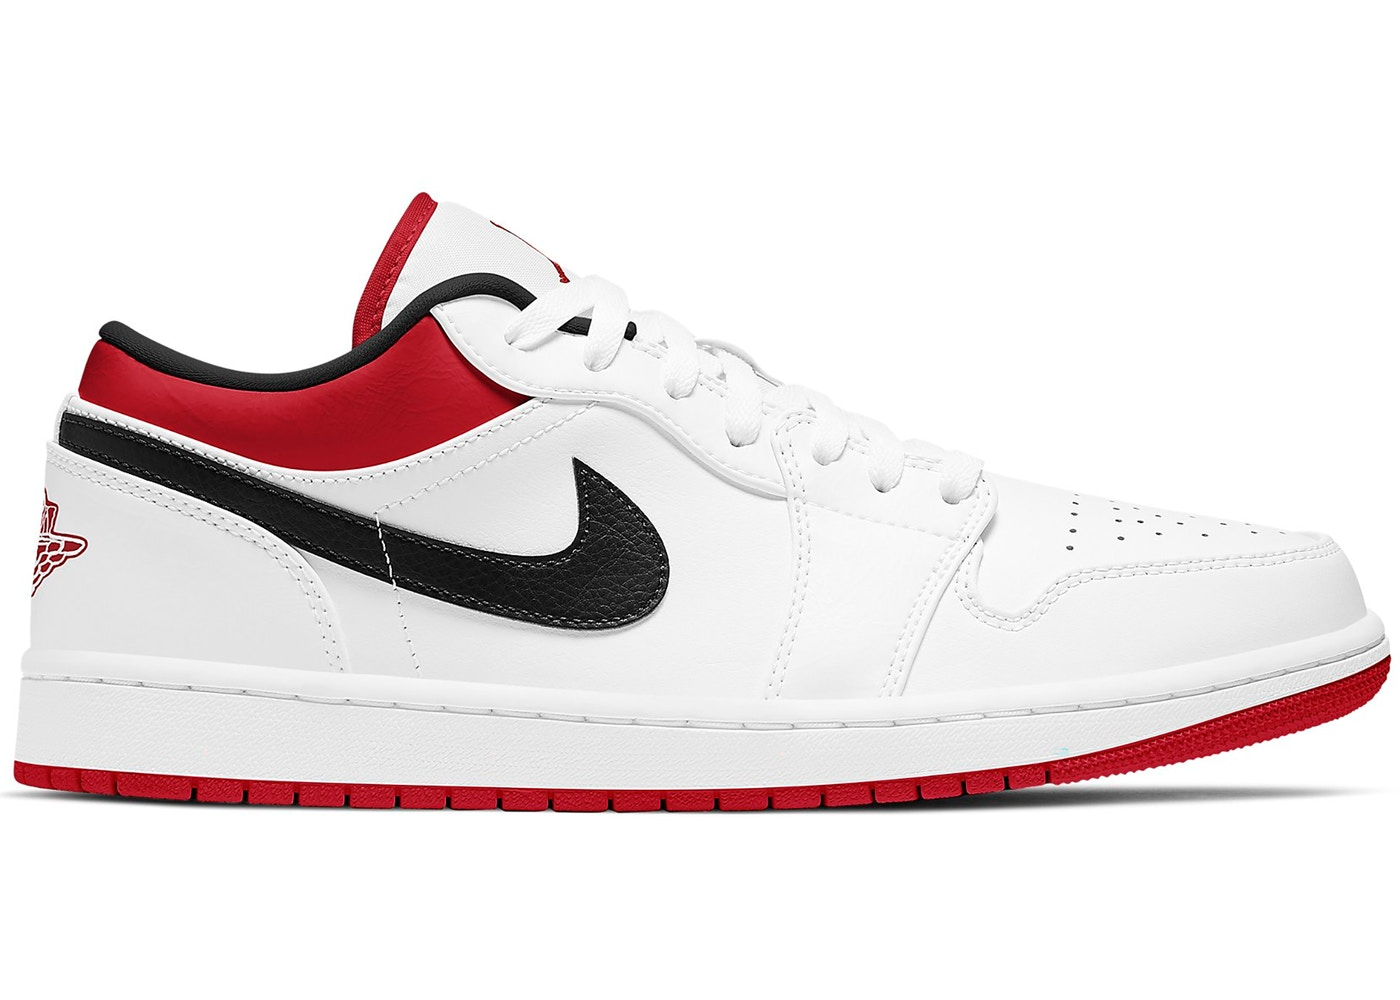 Jordan 1 Low White University Red Black - 553558-118